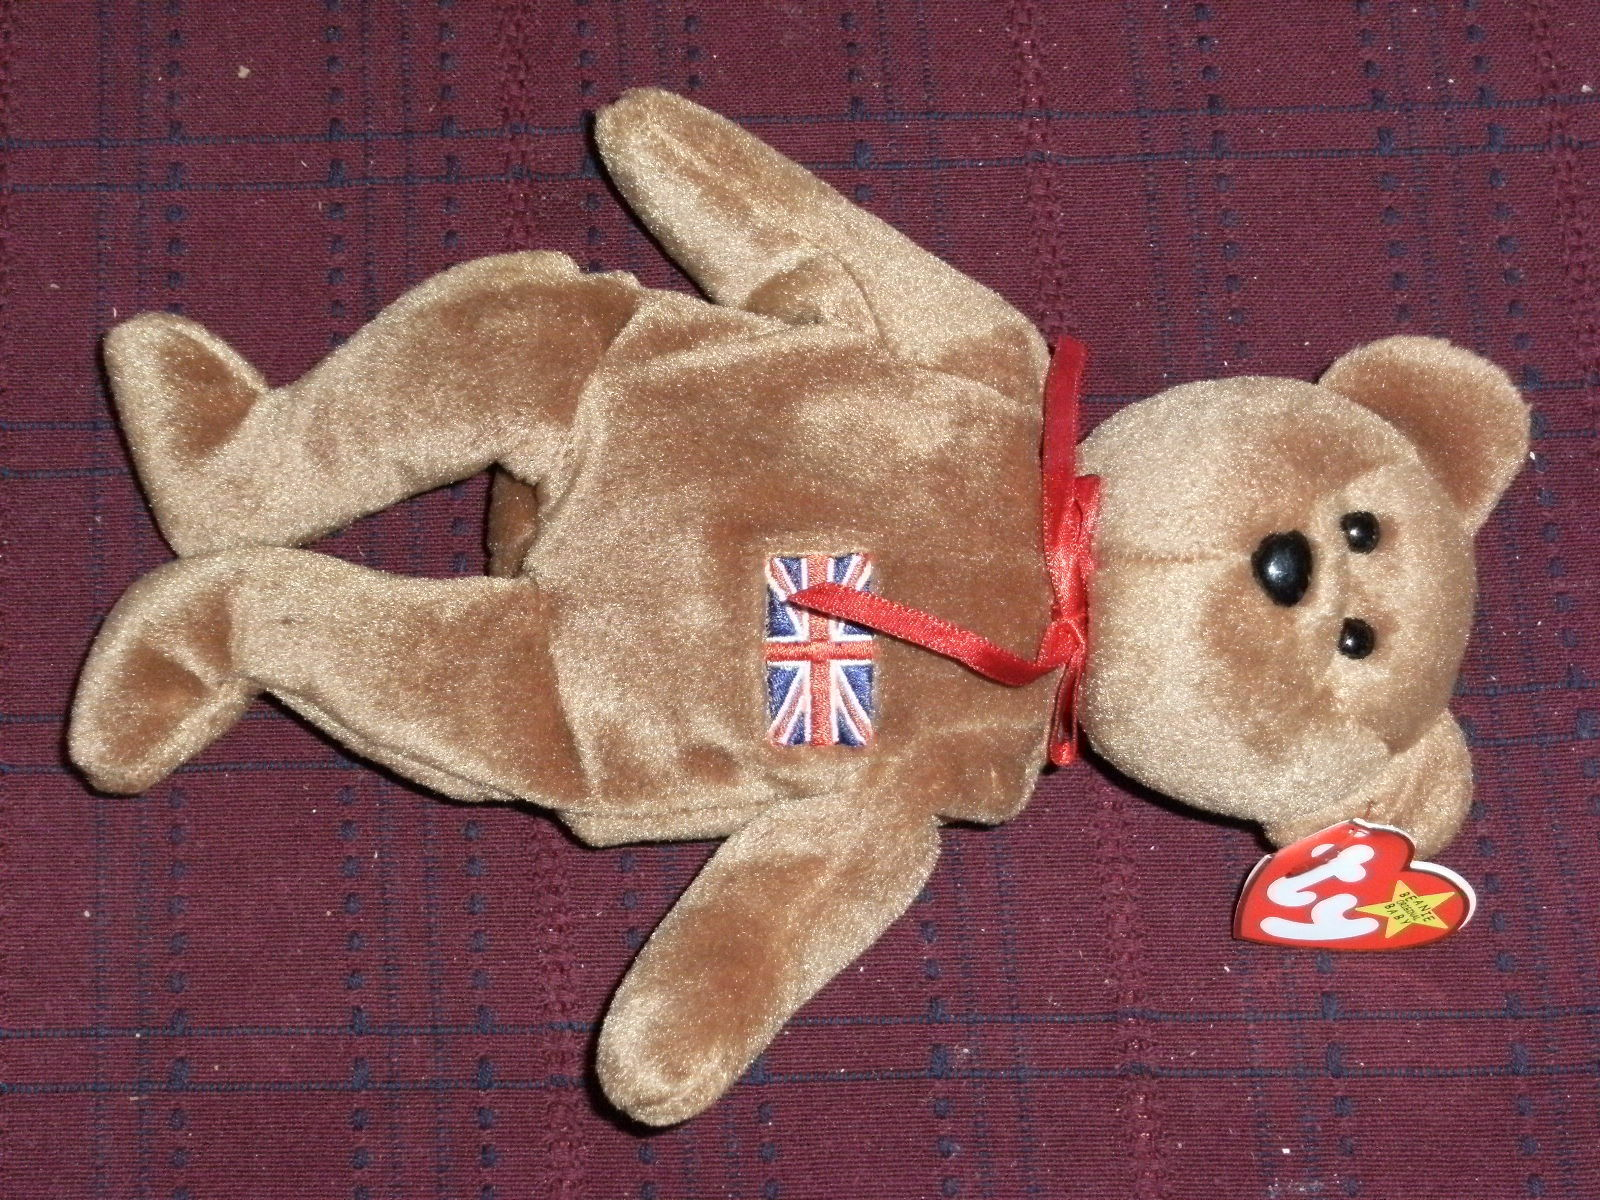 TY BEANIE BABY BABIES TEDDY BEAR BRITANNIA INDONESIA RETIRED 1997 FULL SIZE